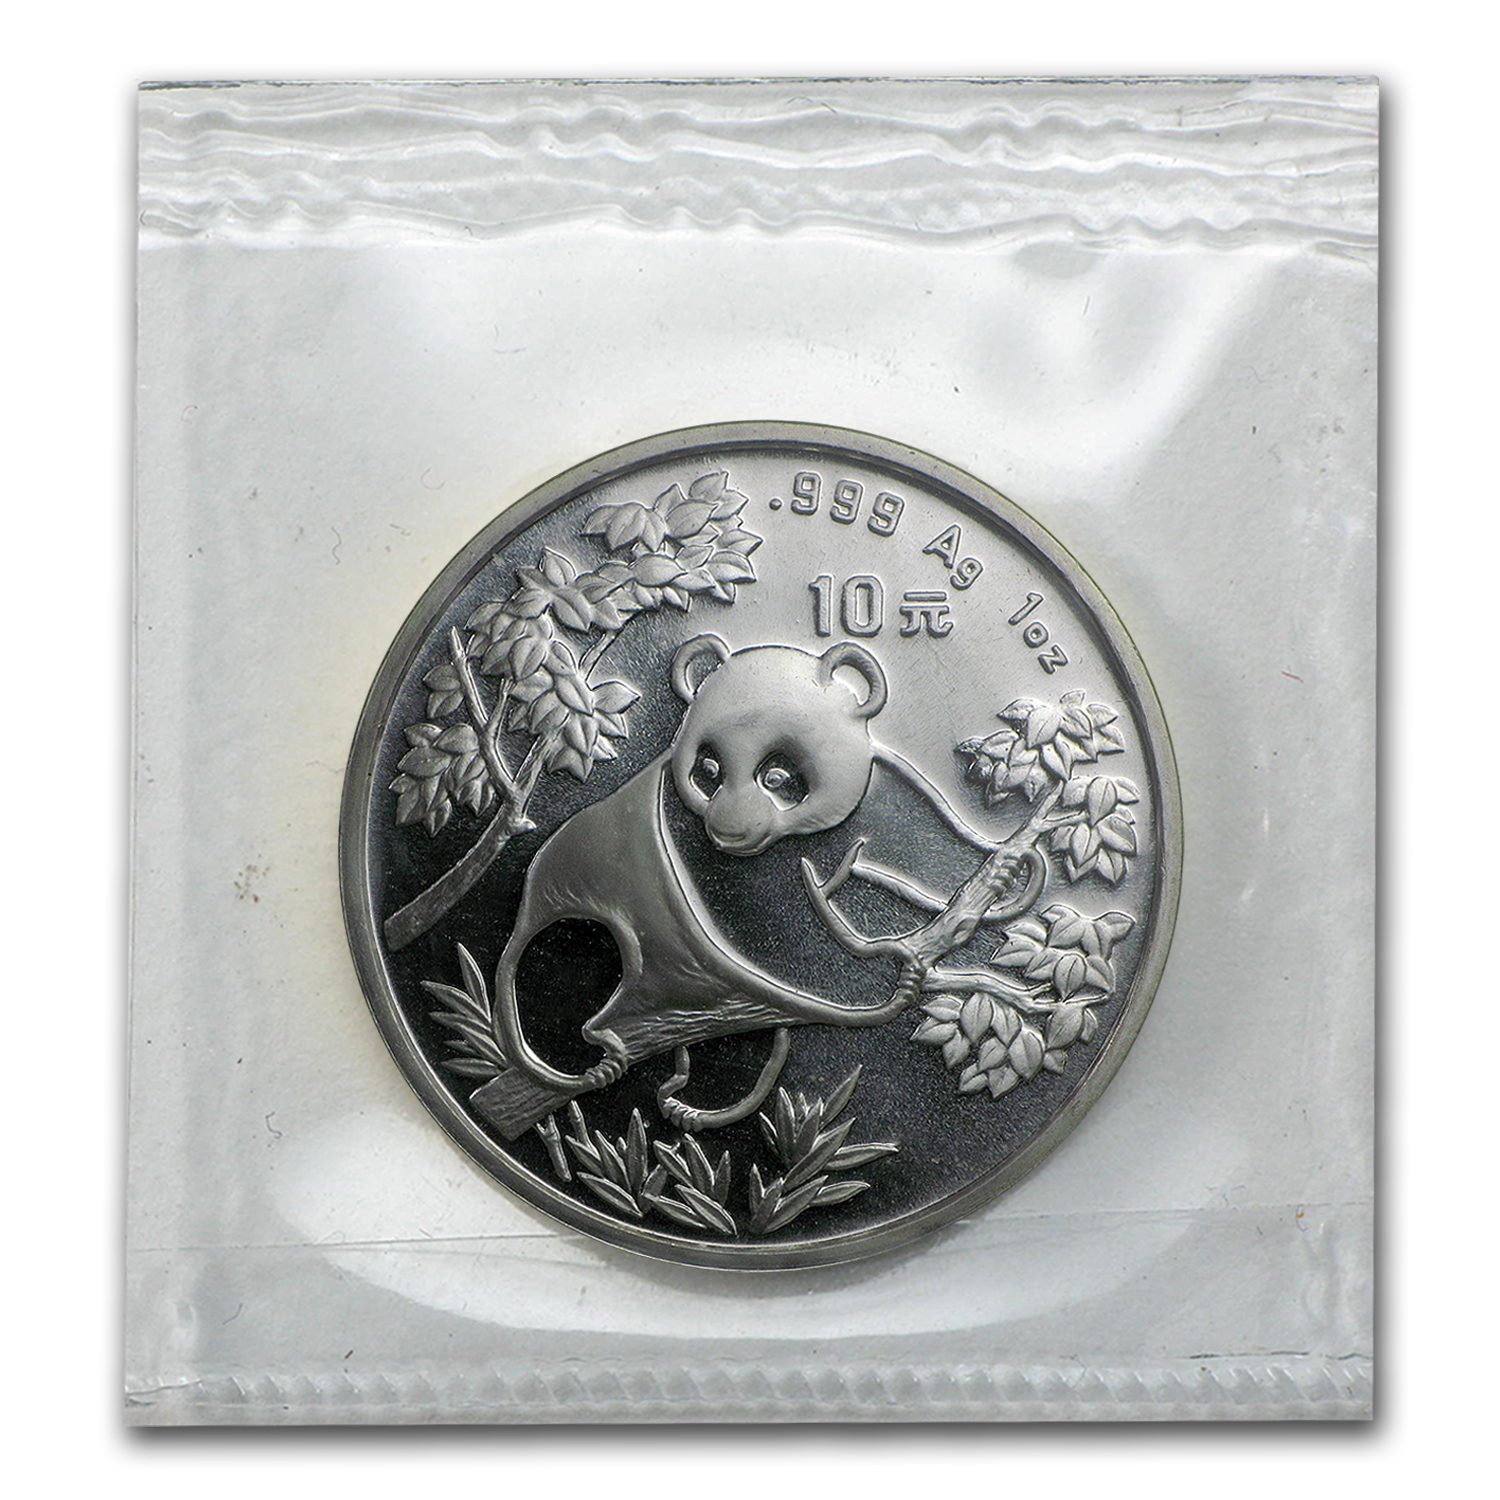 1992 1 oz Silver Chinese Panda Small Date BU (Sealed)